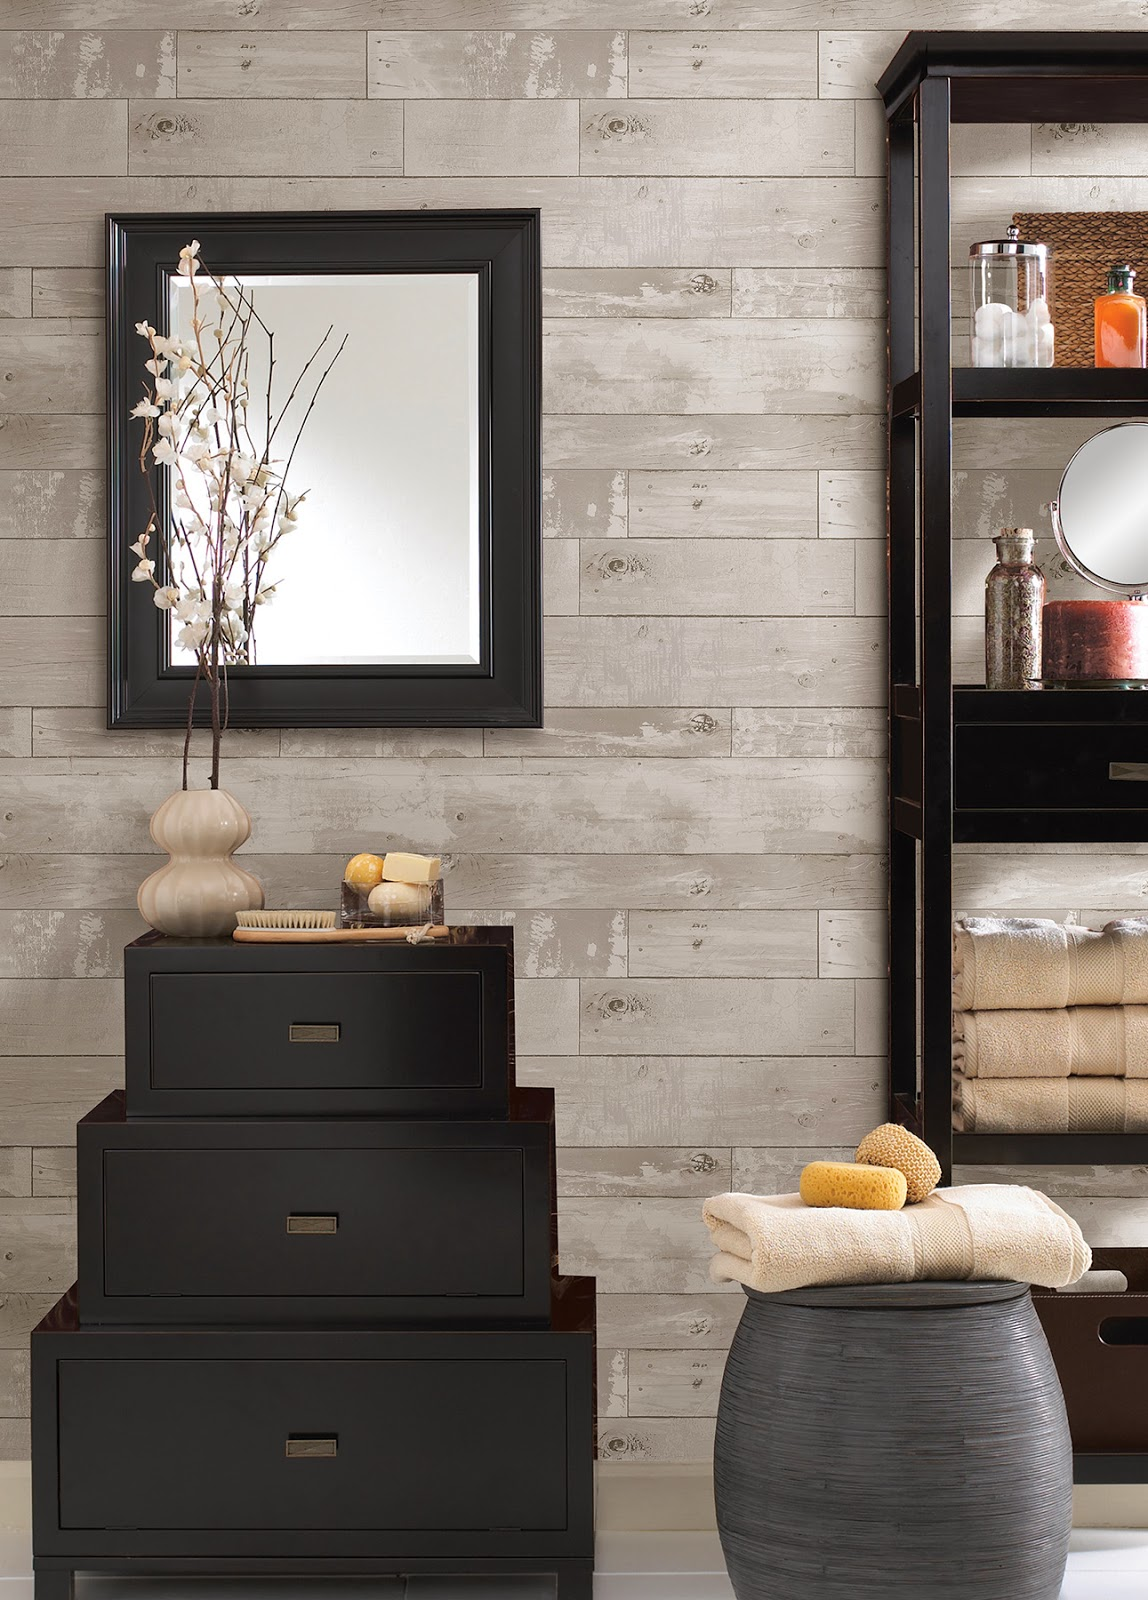 https://www.wallcoveringsforless.com/shoppingcart/prodlist1.CFM?page=_prod_detail.cfm&product_id=42798&startrow=25&search=347-&pagereturn=_search.cfm